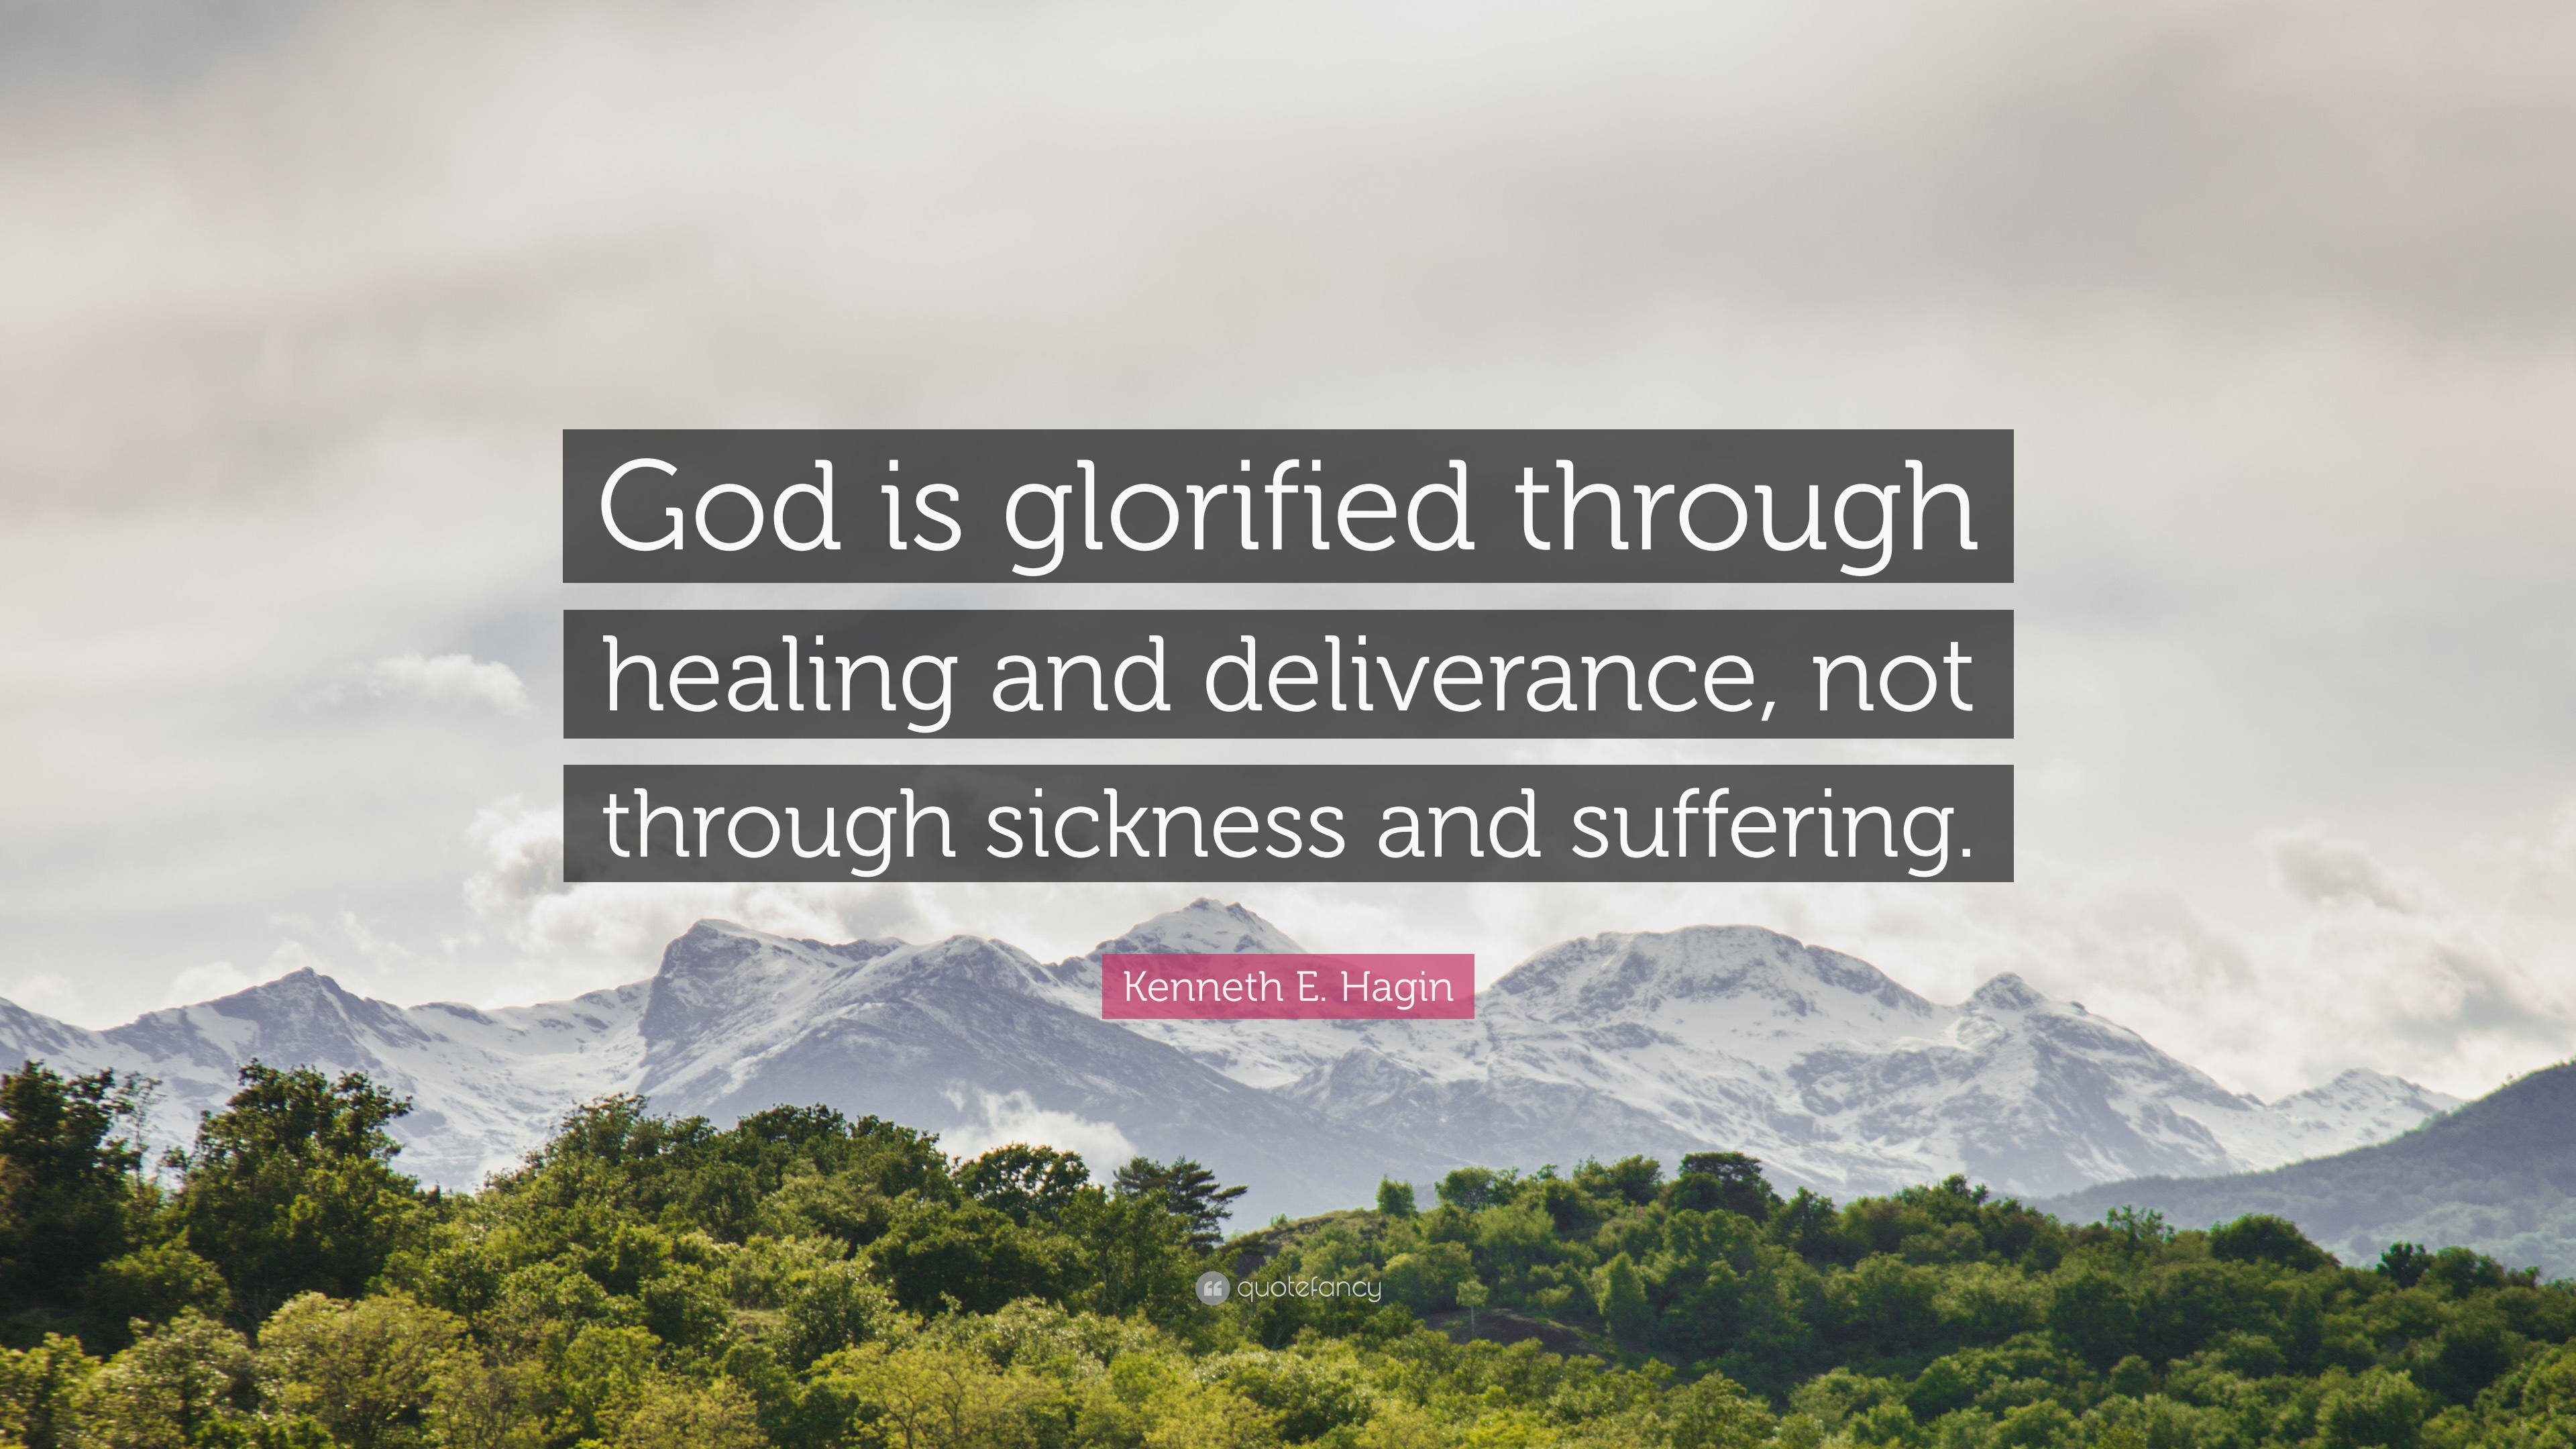 Image of: Sick Kenneth E Hagin Quote god Is Glorified Through Healing And Deliverance Not Quotefancy Kenneth E Hagin Quote god Is Glorified Through Healing And